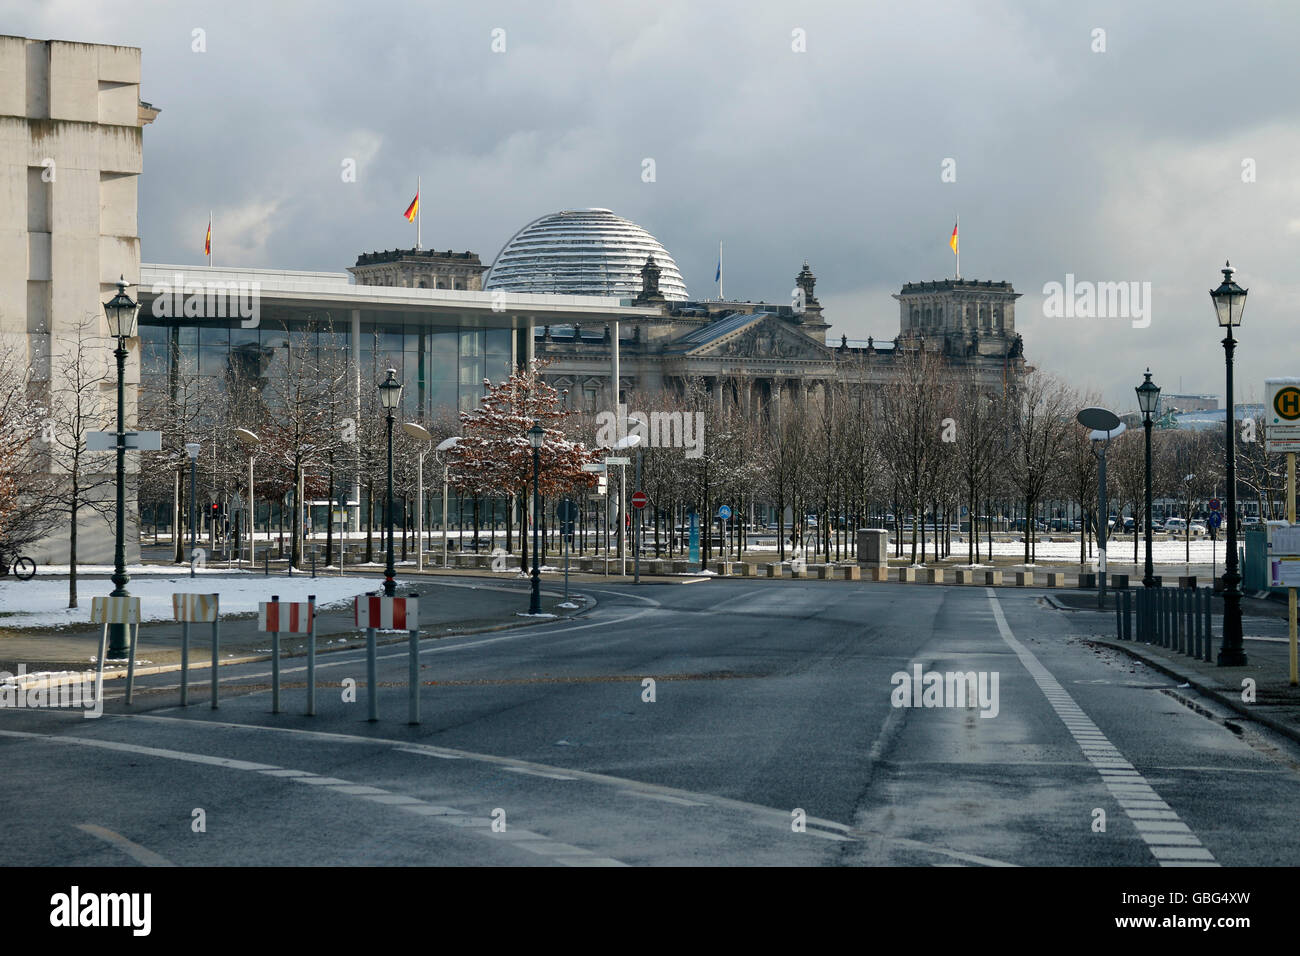 Reichstag, Berlin. - Stock Image